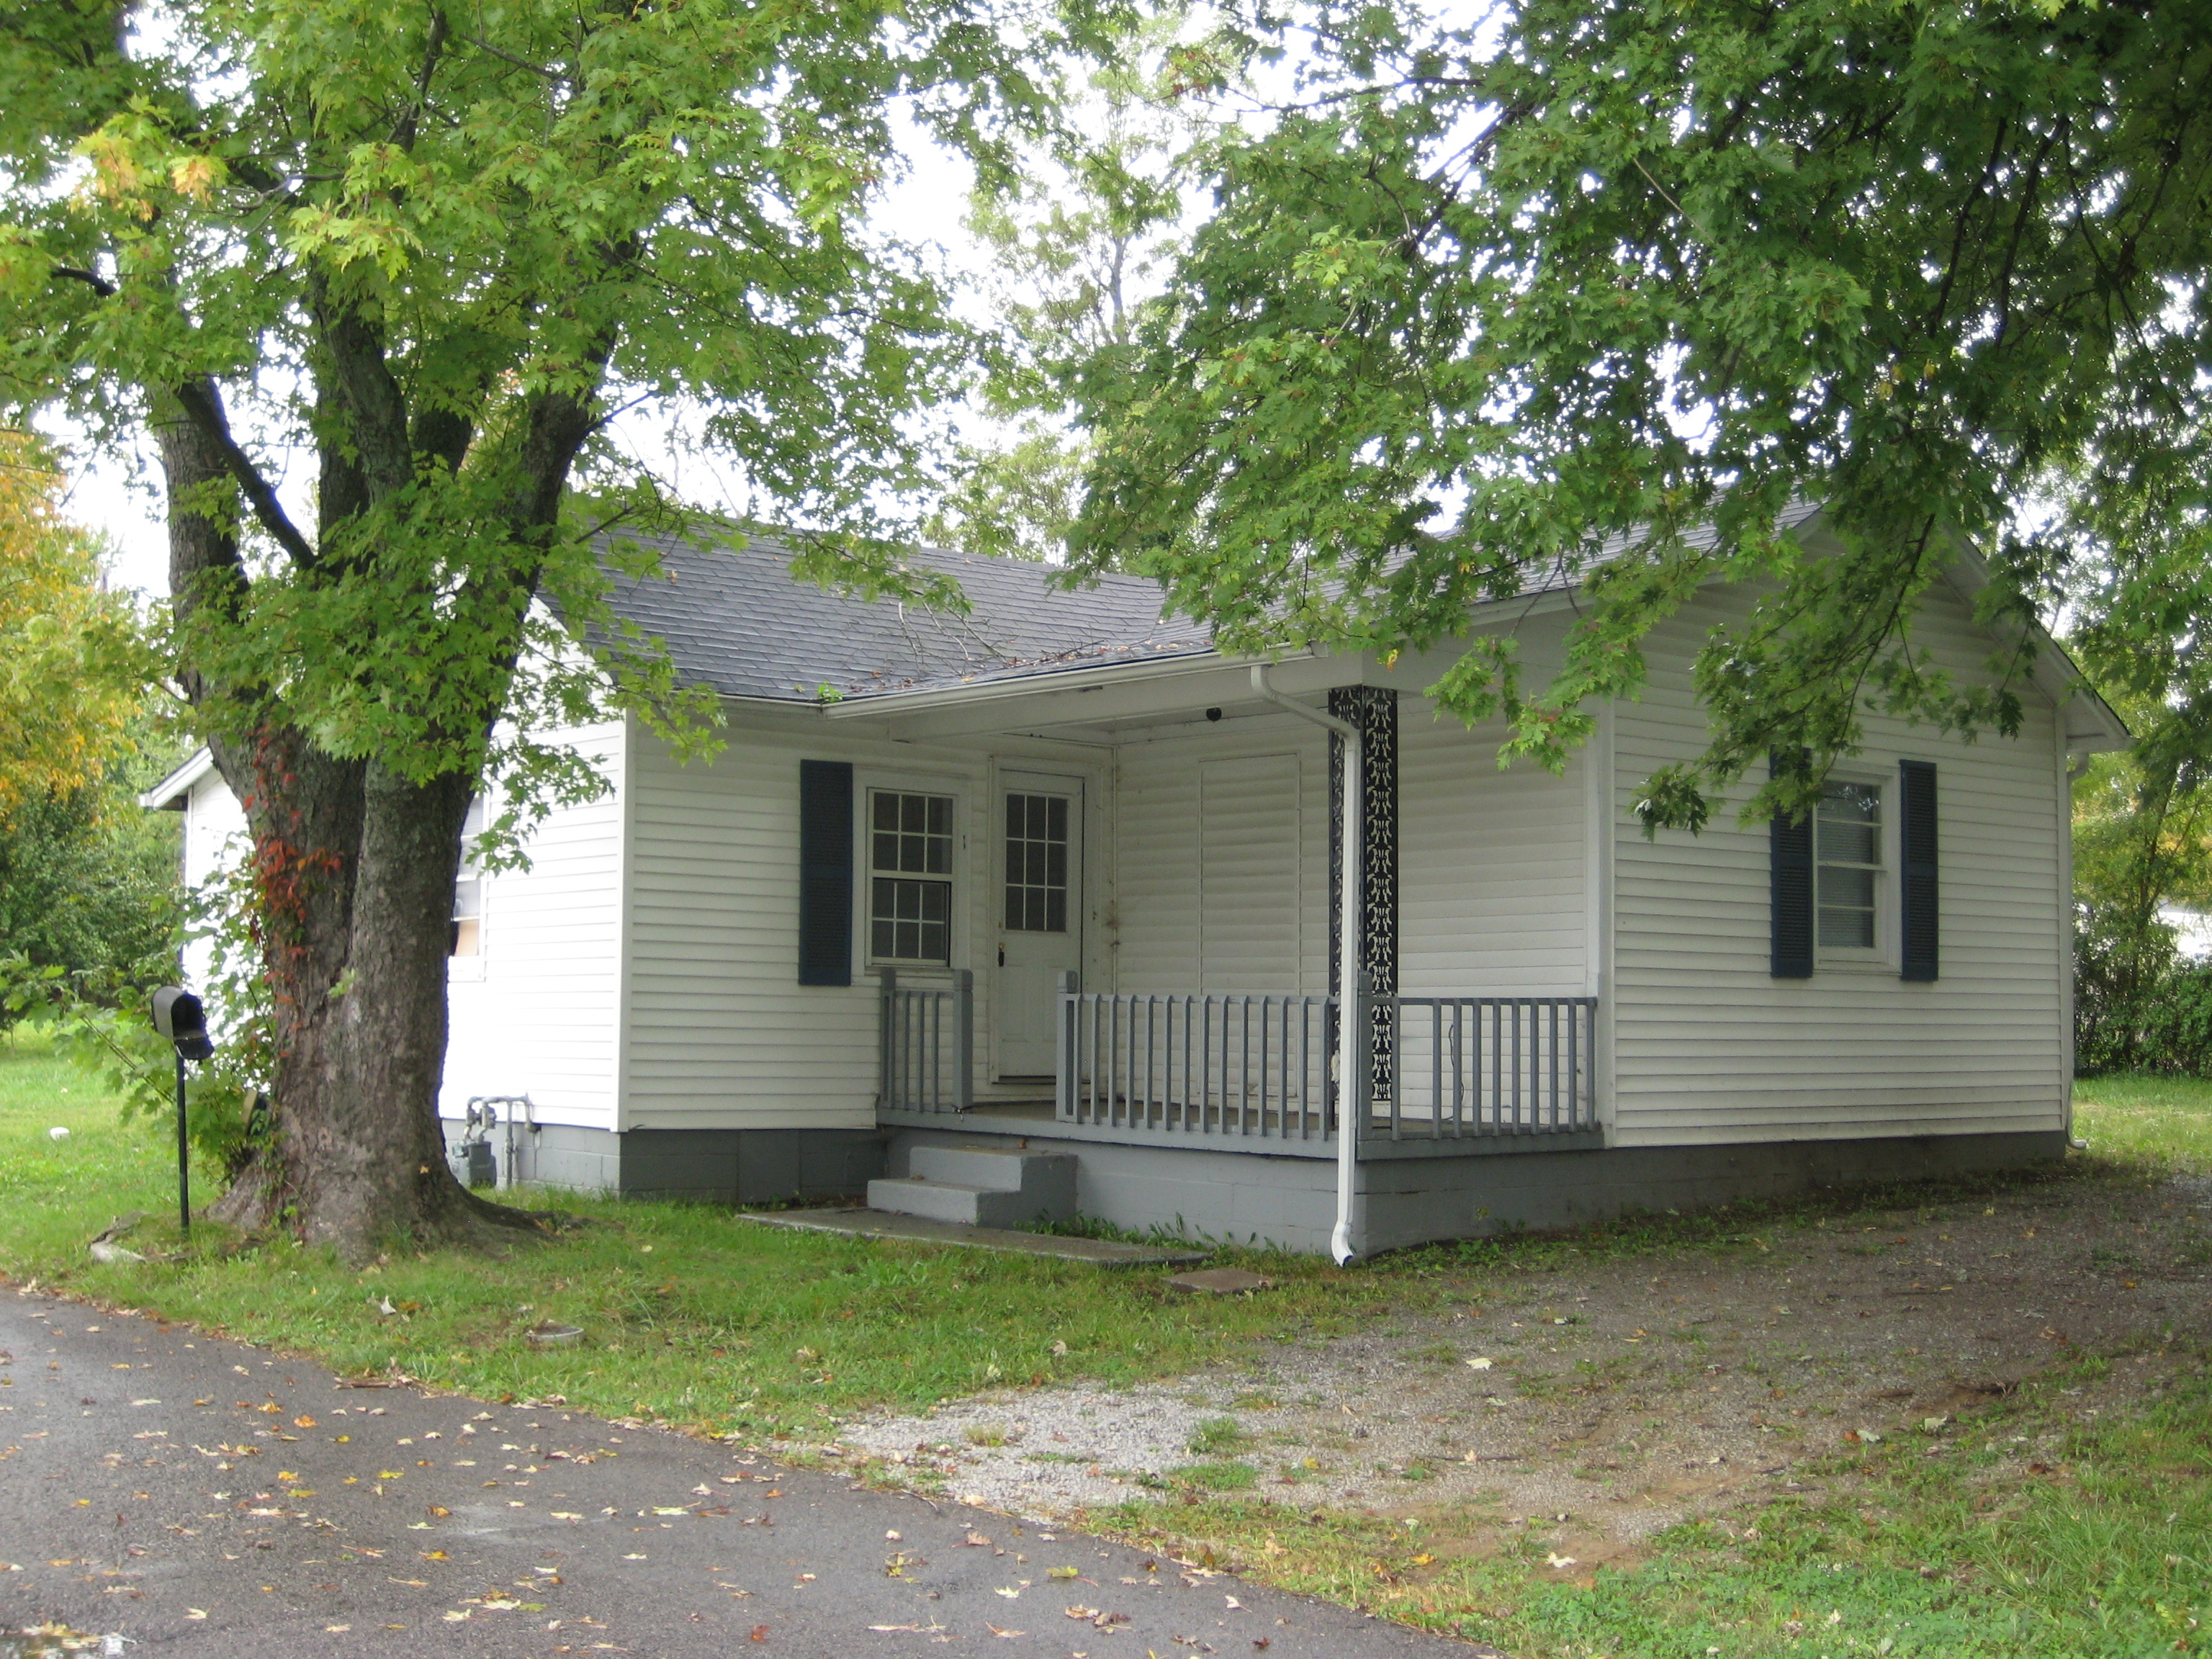 1 Morgan St Radcliff Friday October 26 2 00 Pm Re Max Group Auctioneers Hardin County